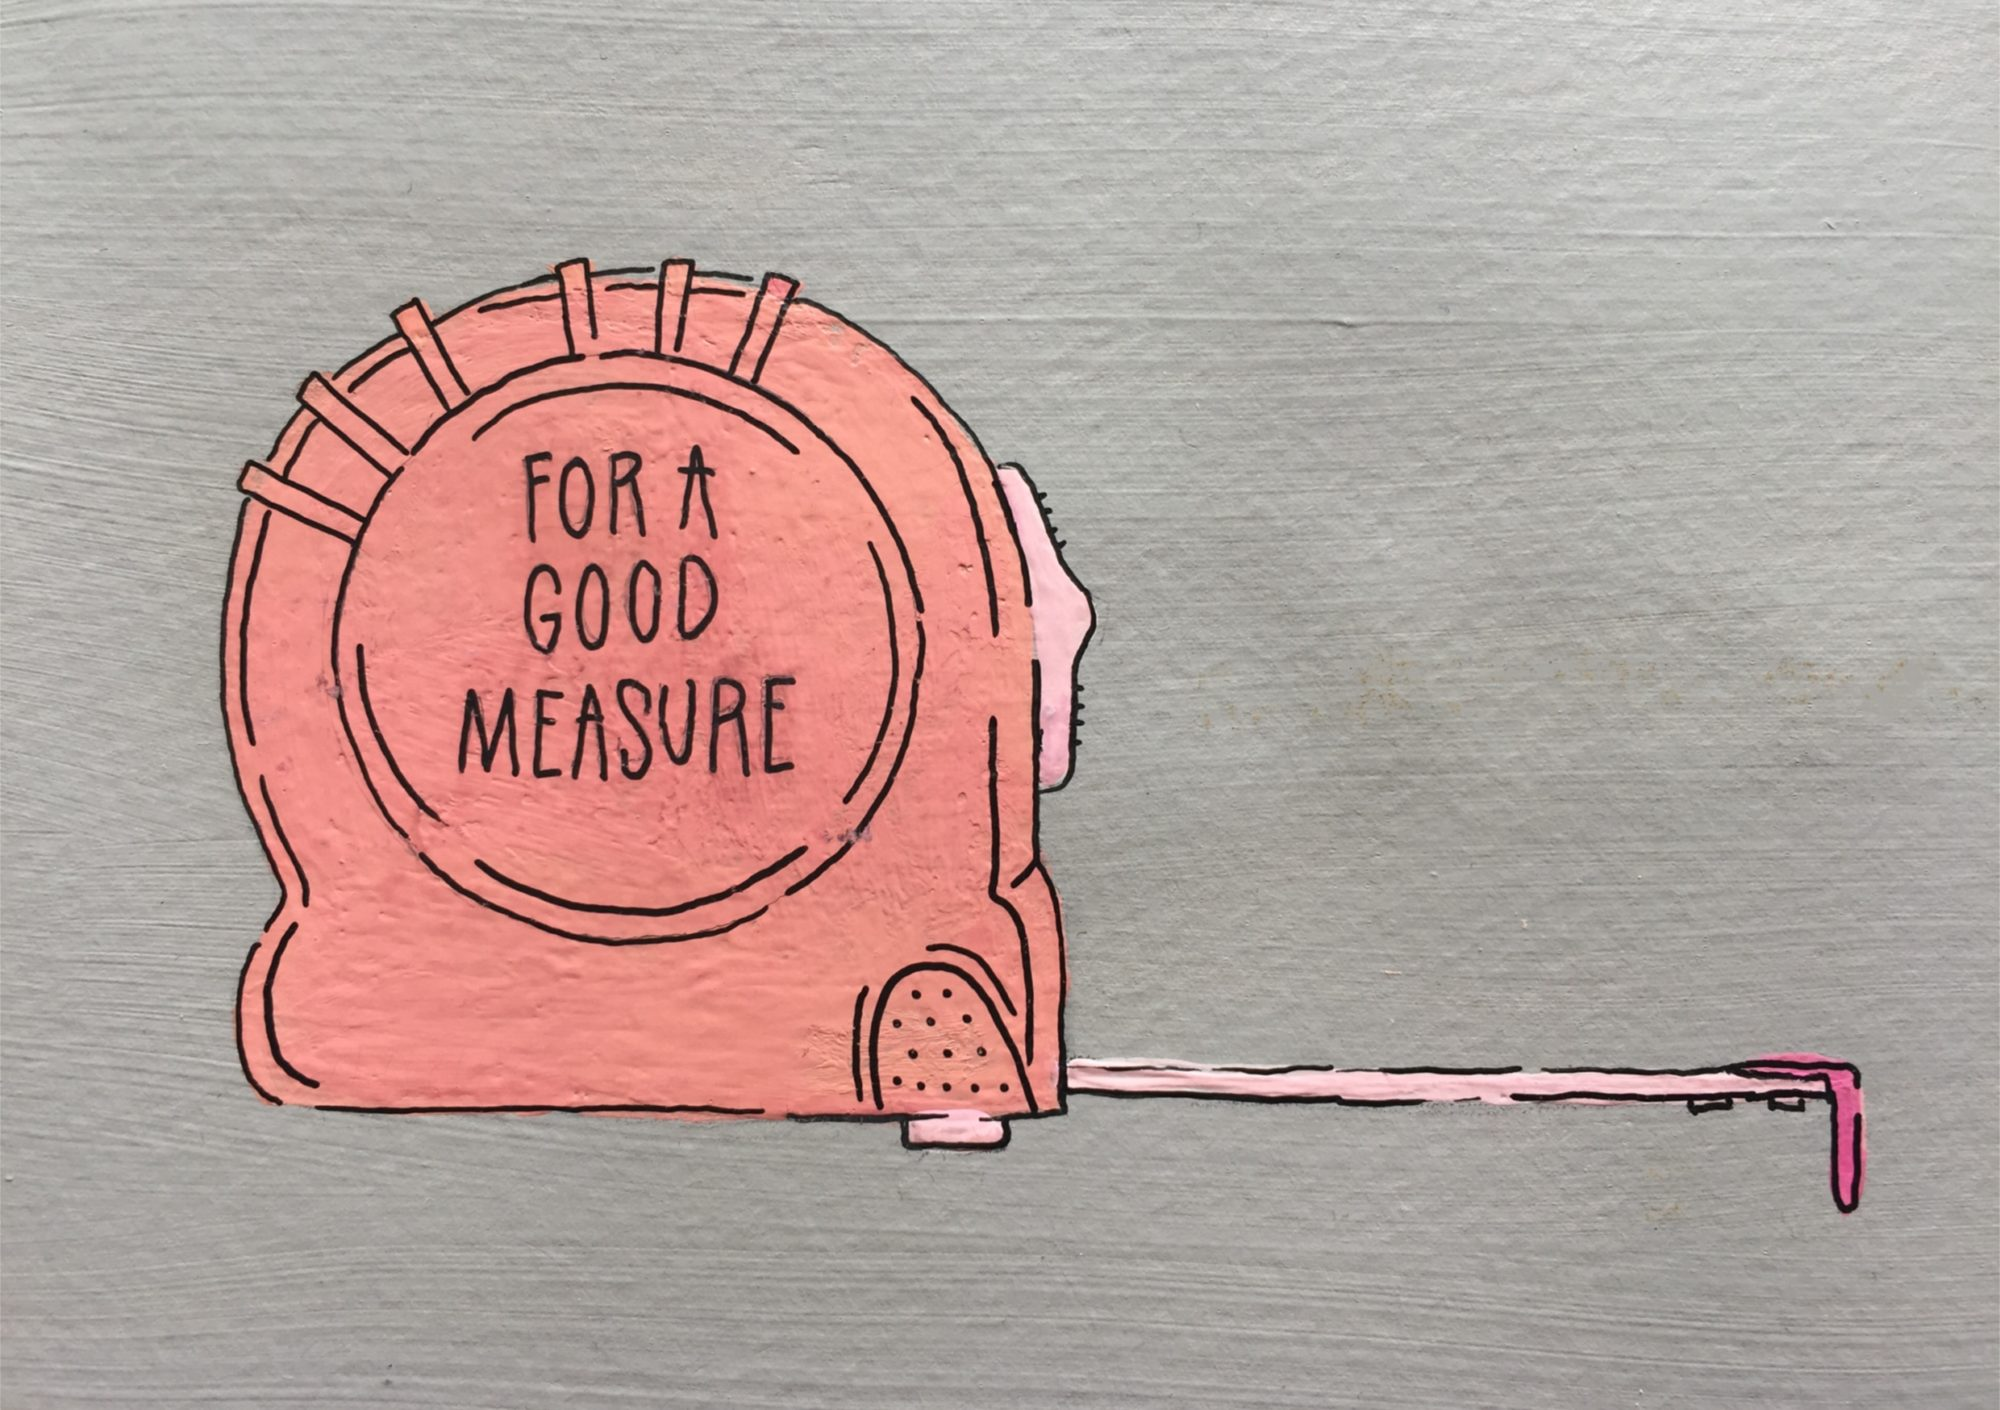 Gouache painting of a measuring tape with hand-lettering on it.